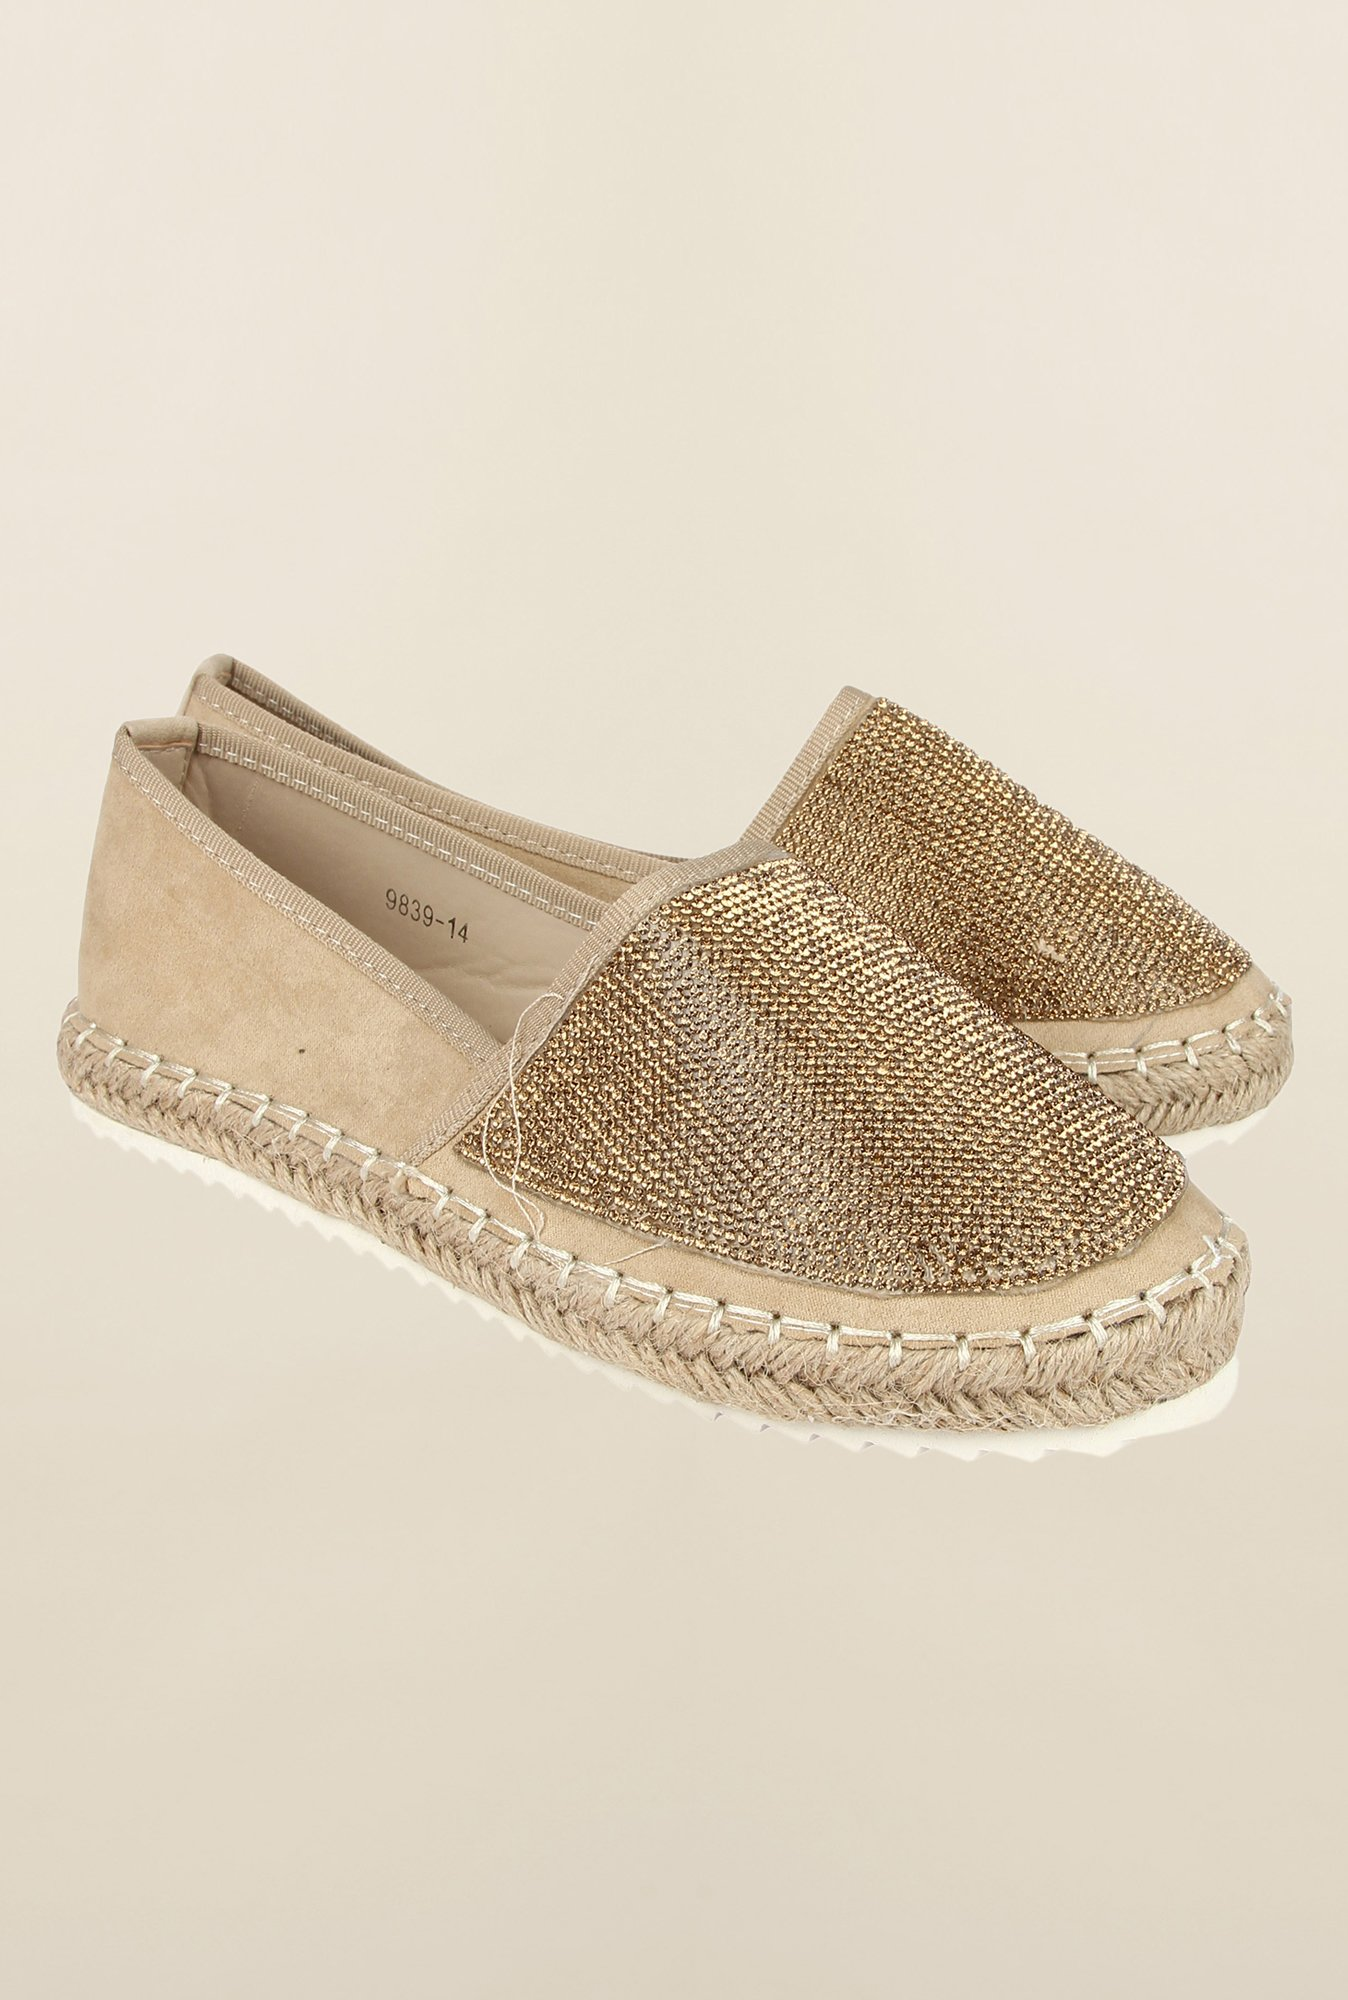 Cobblerz Beige Espadrille Shoes